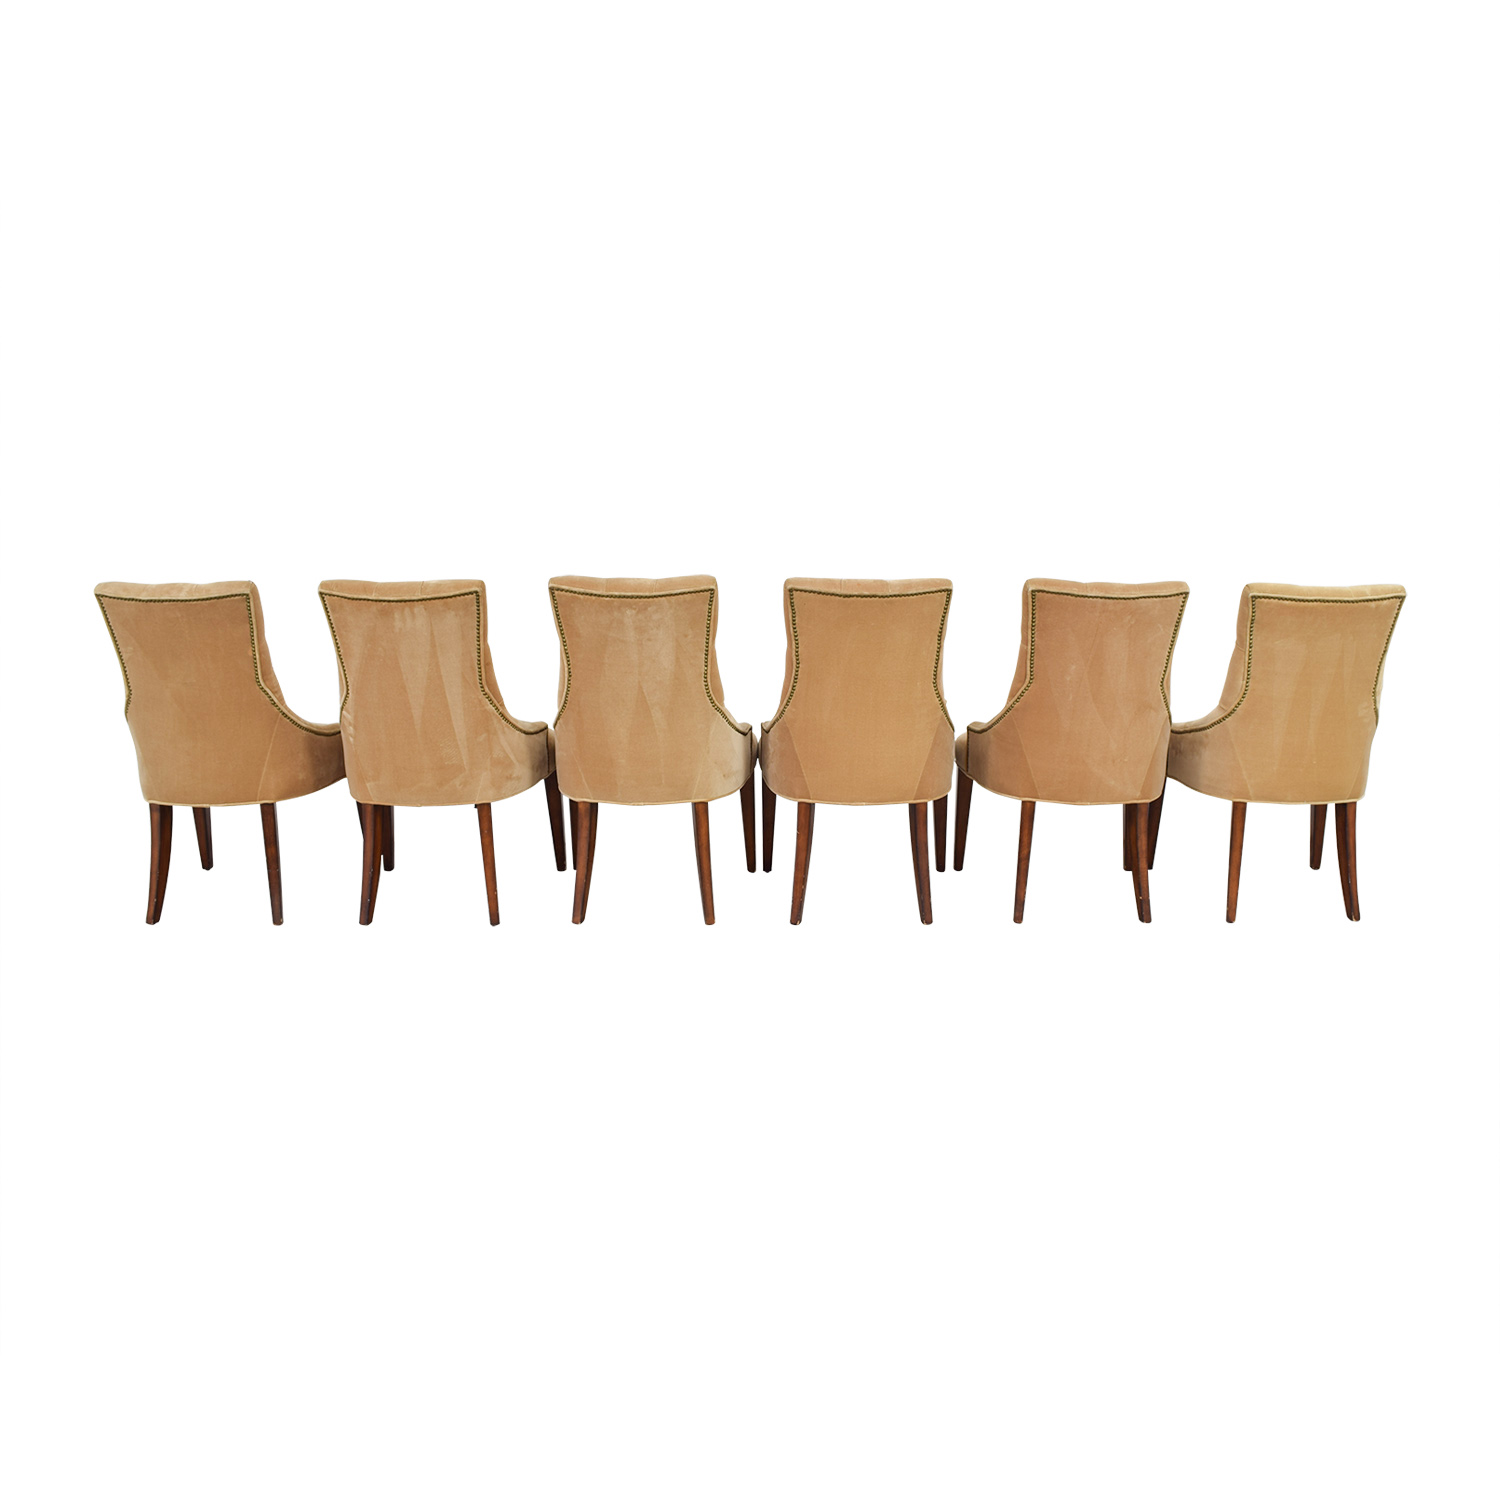 Tan Tufted Velvet Chairs price